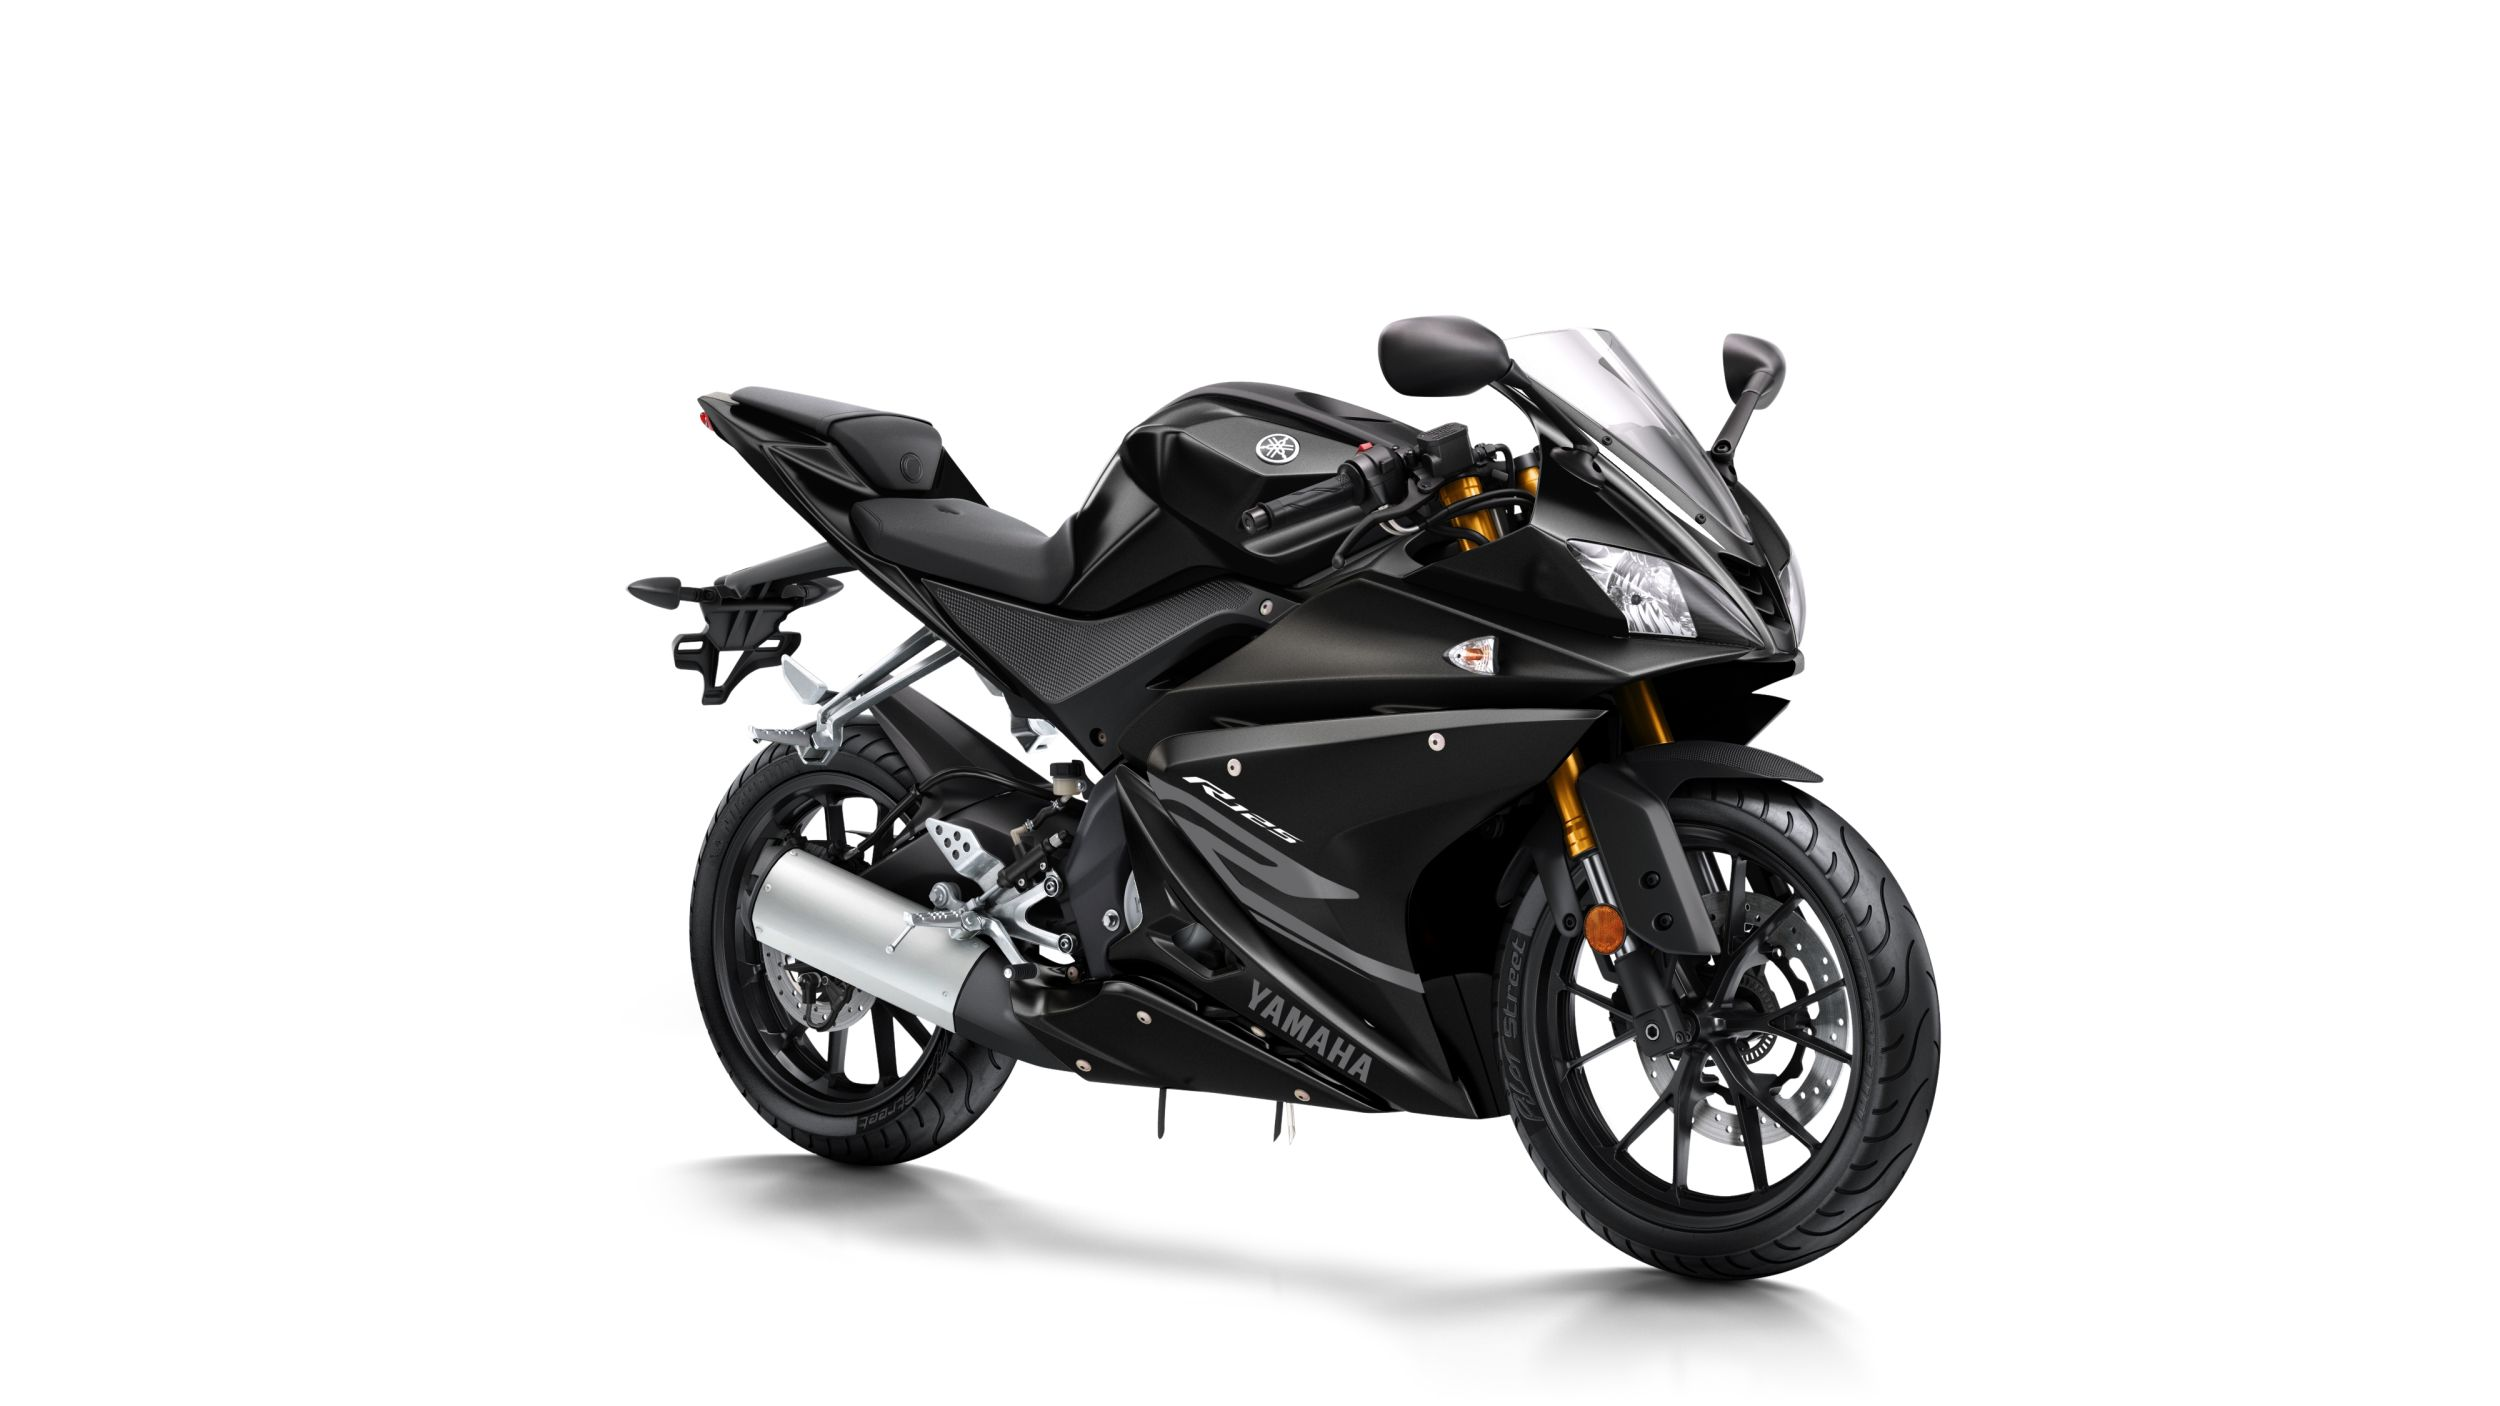 yamaha yzf r125 all technical data of the model yzf r125 from yamaha. Black Bedroom Furniture Sets. Home Design Ideas